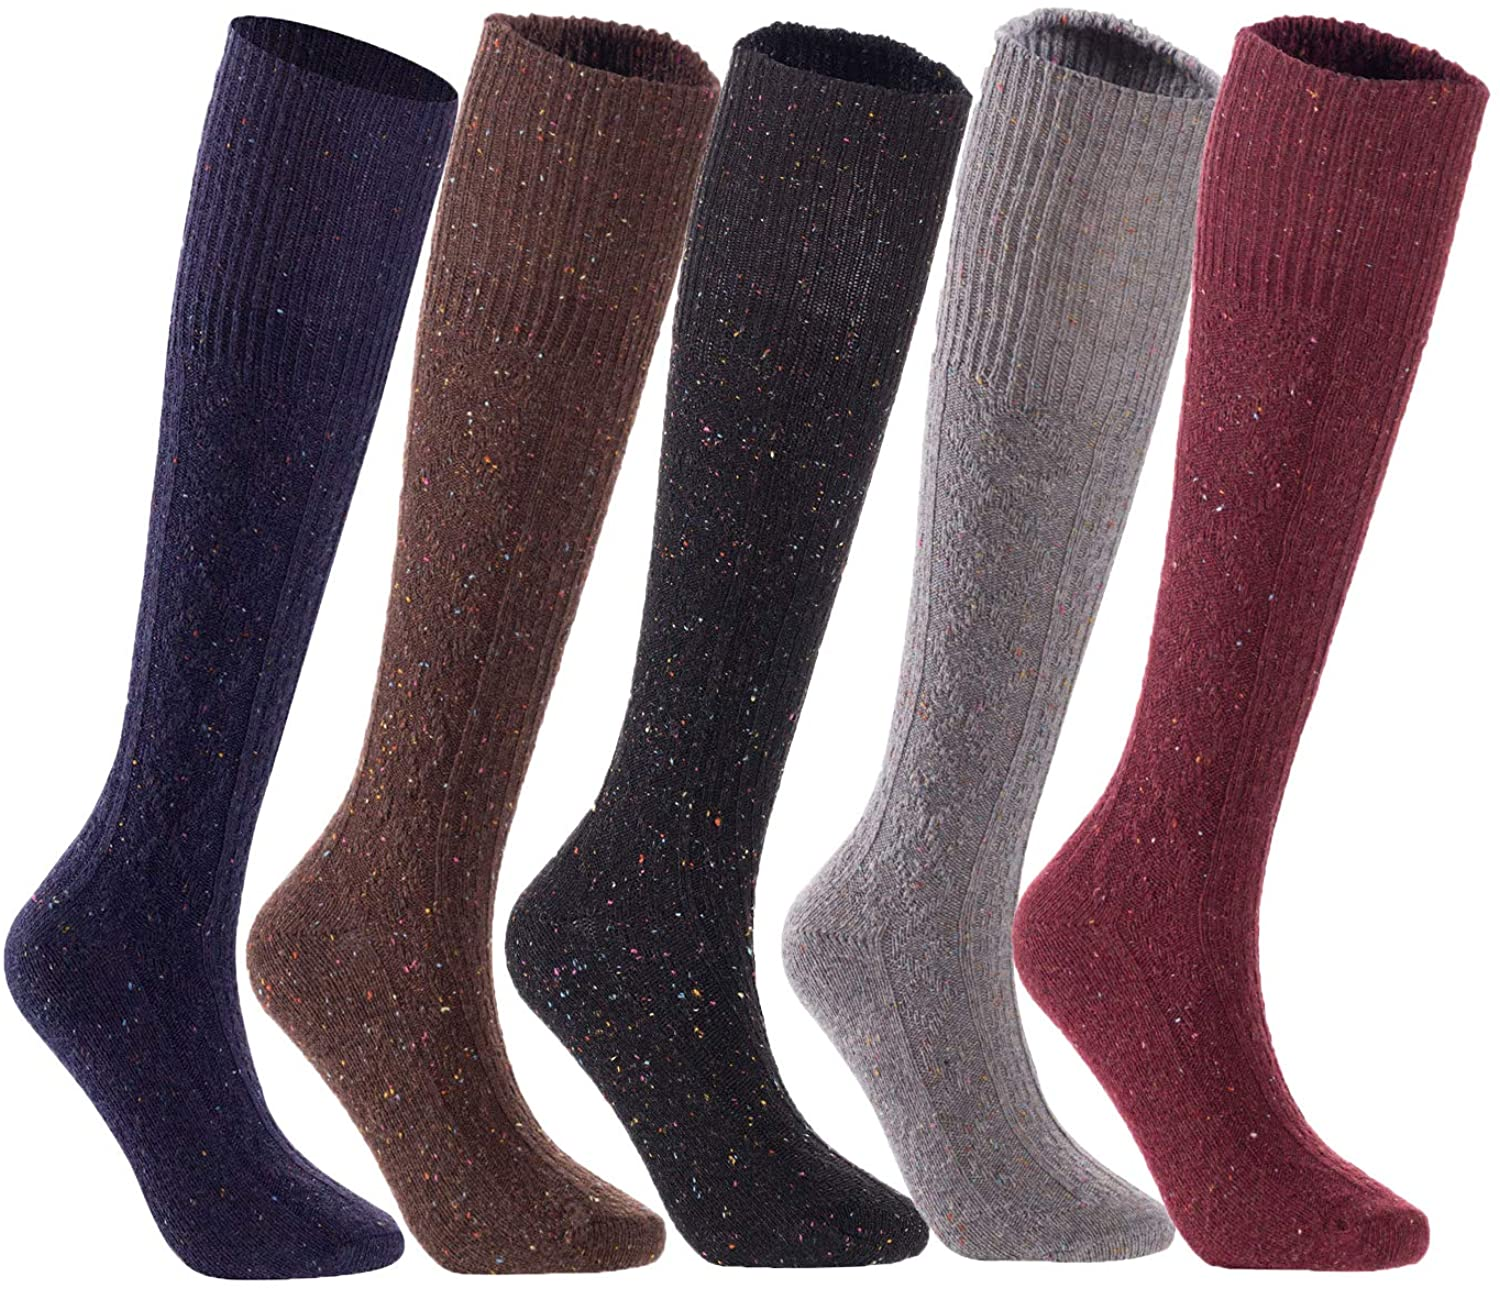 Lian LifeStyle Women's 5 Pairs Knee High Wool Boot Socks HR1412 Size 6-9 5 Colors